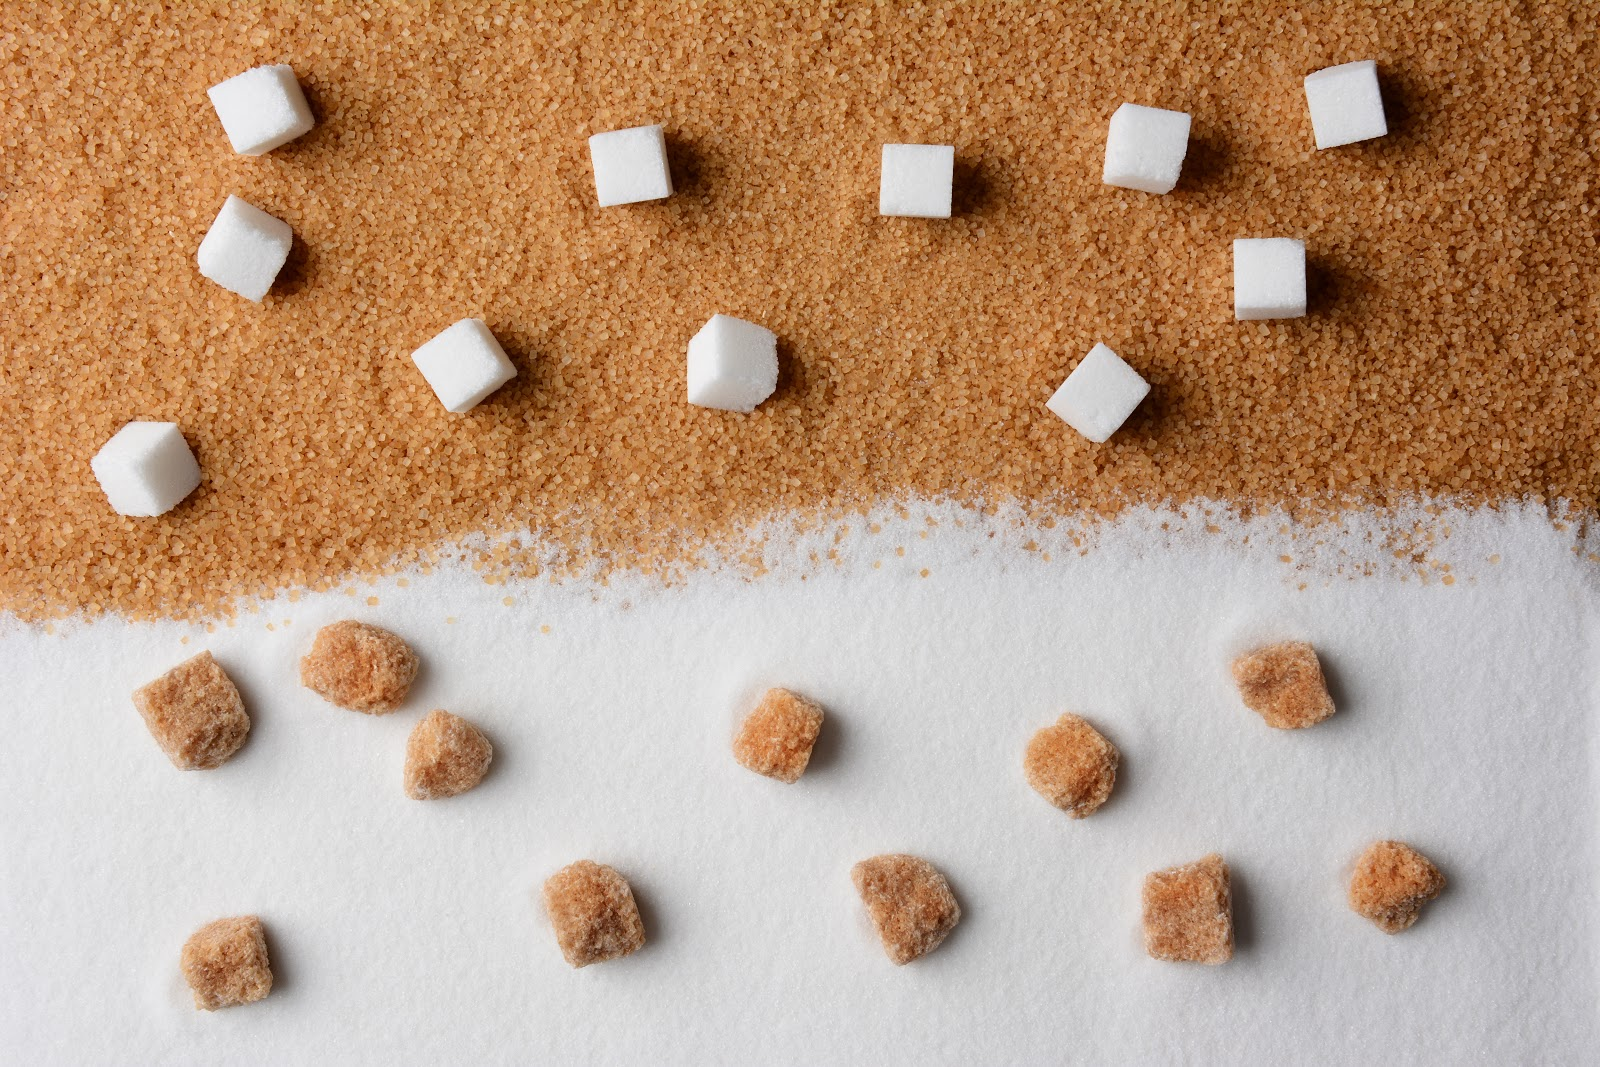 Even sugar can contain bone-char, which is derived from animals